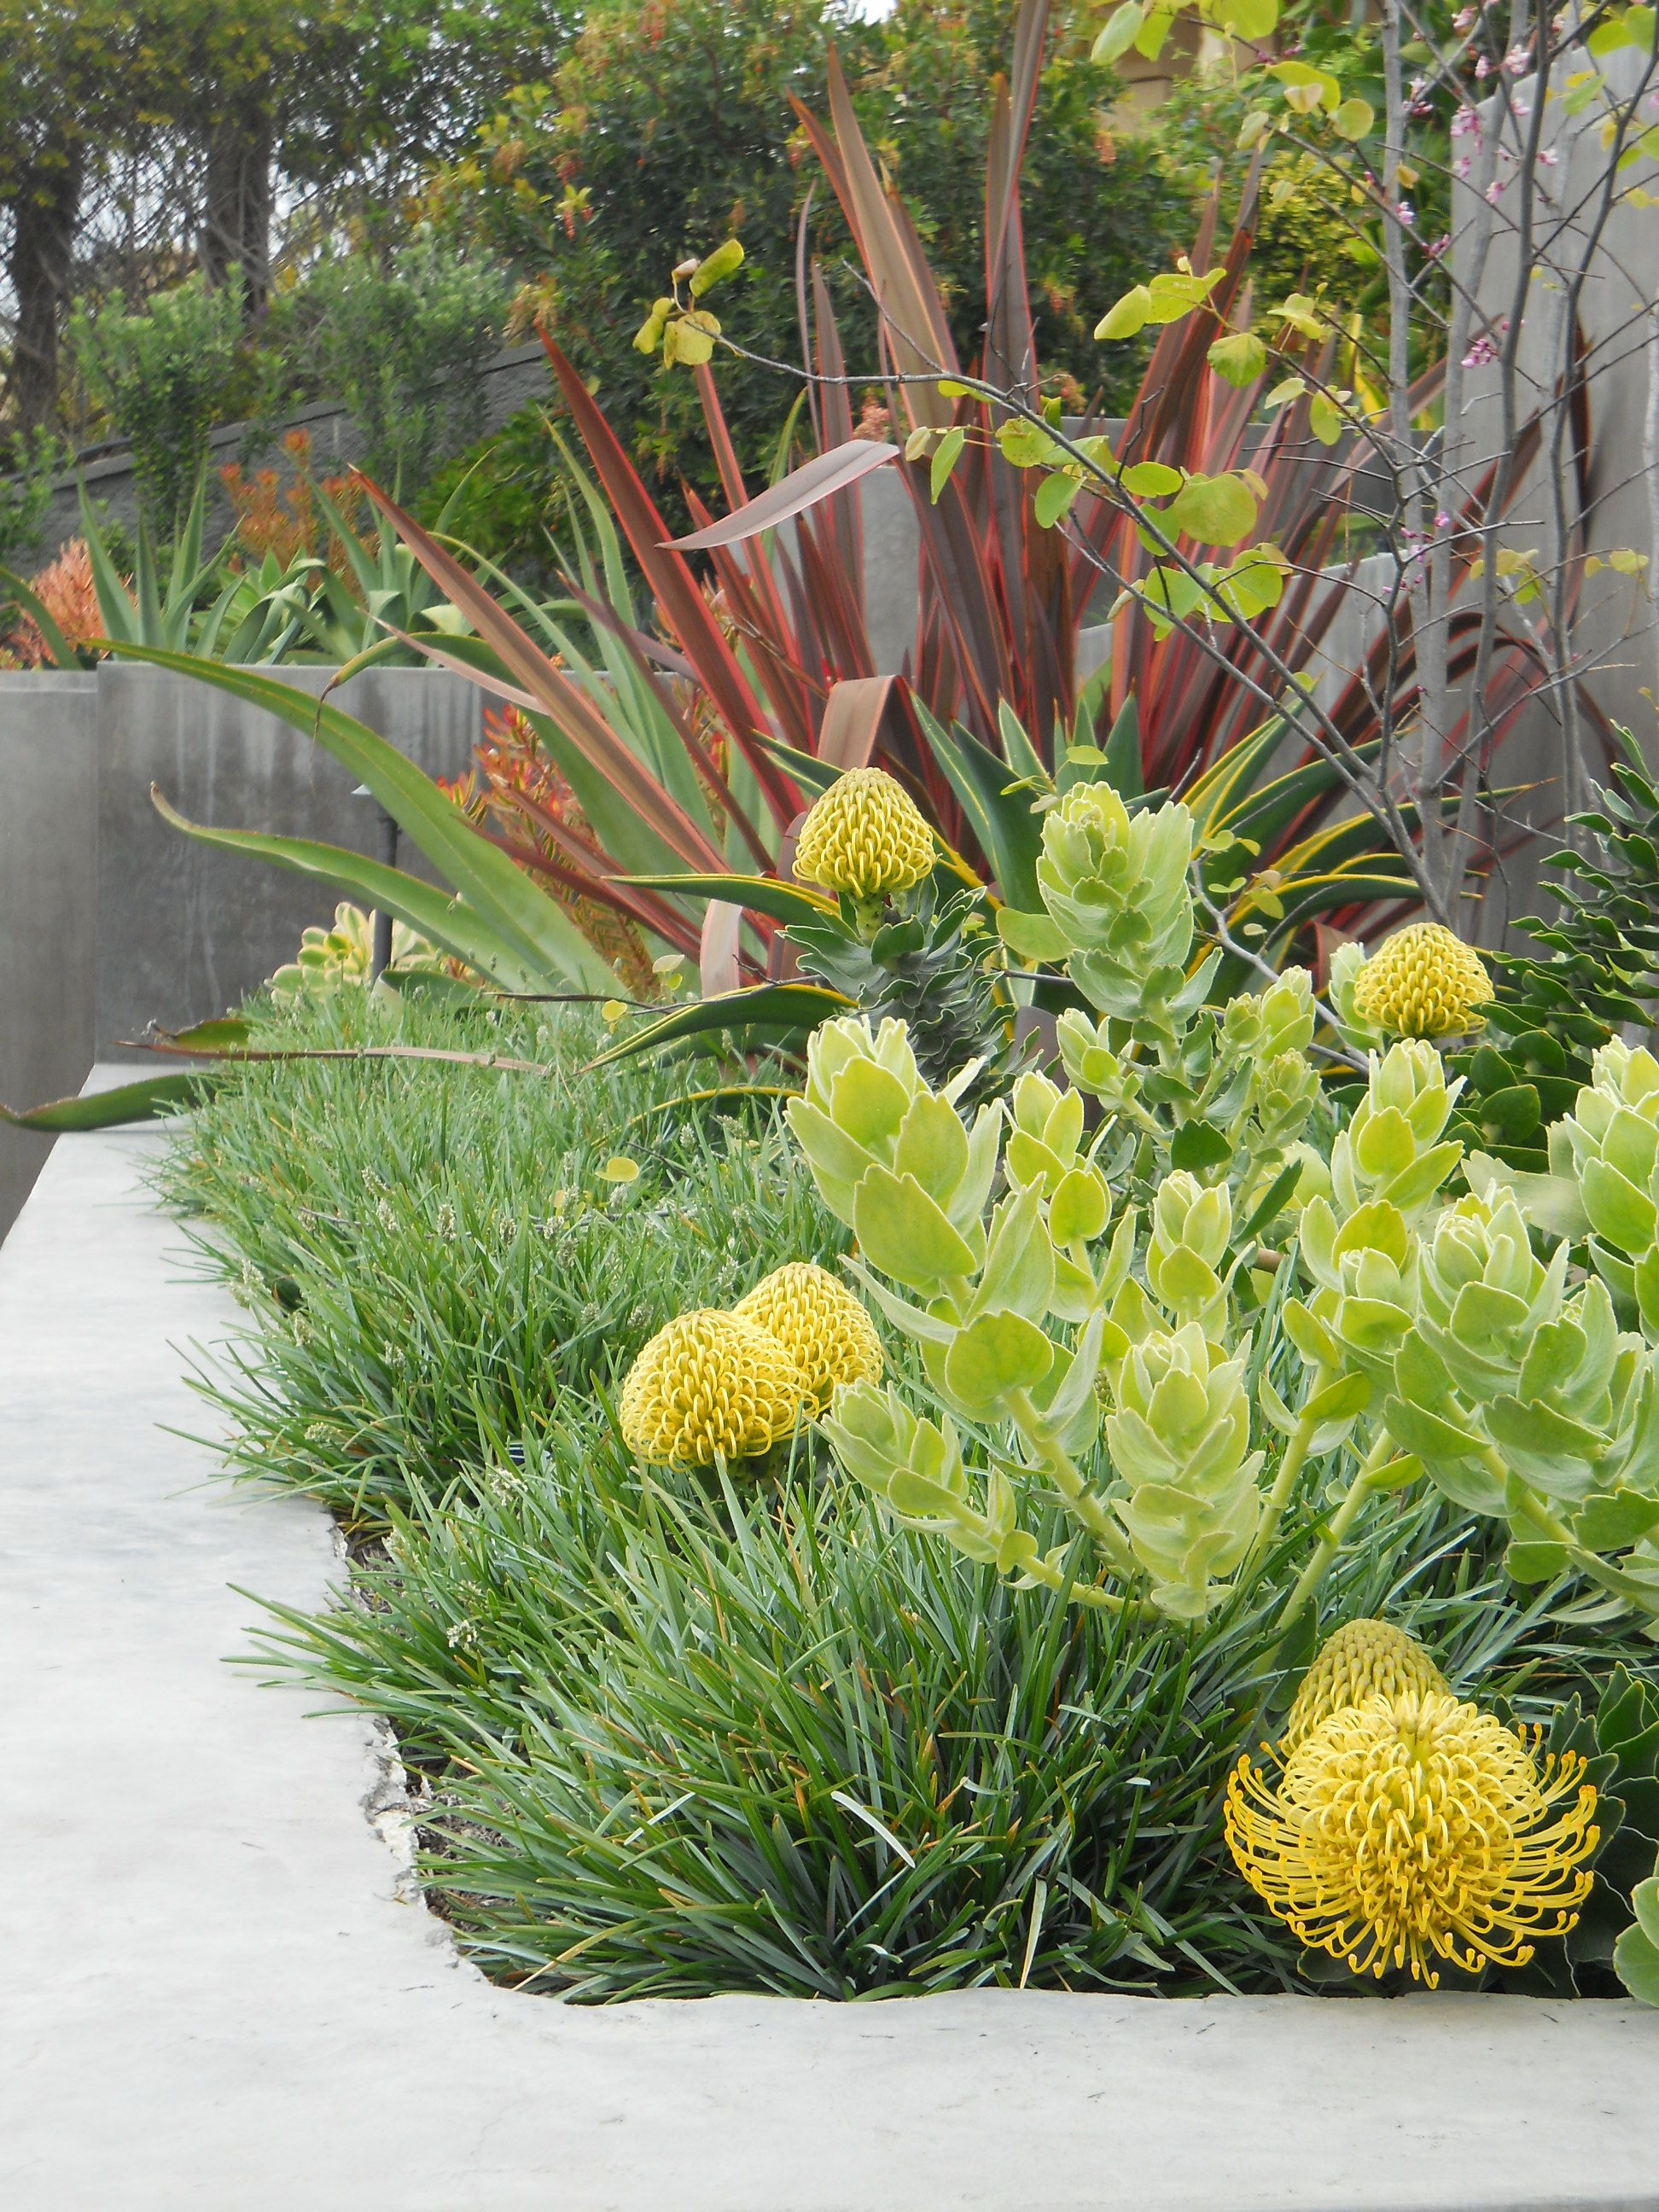 Ca friendly design ideas drought tolerant firebird and for Gardening australia